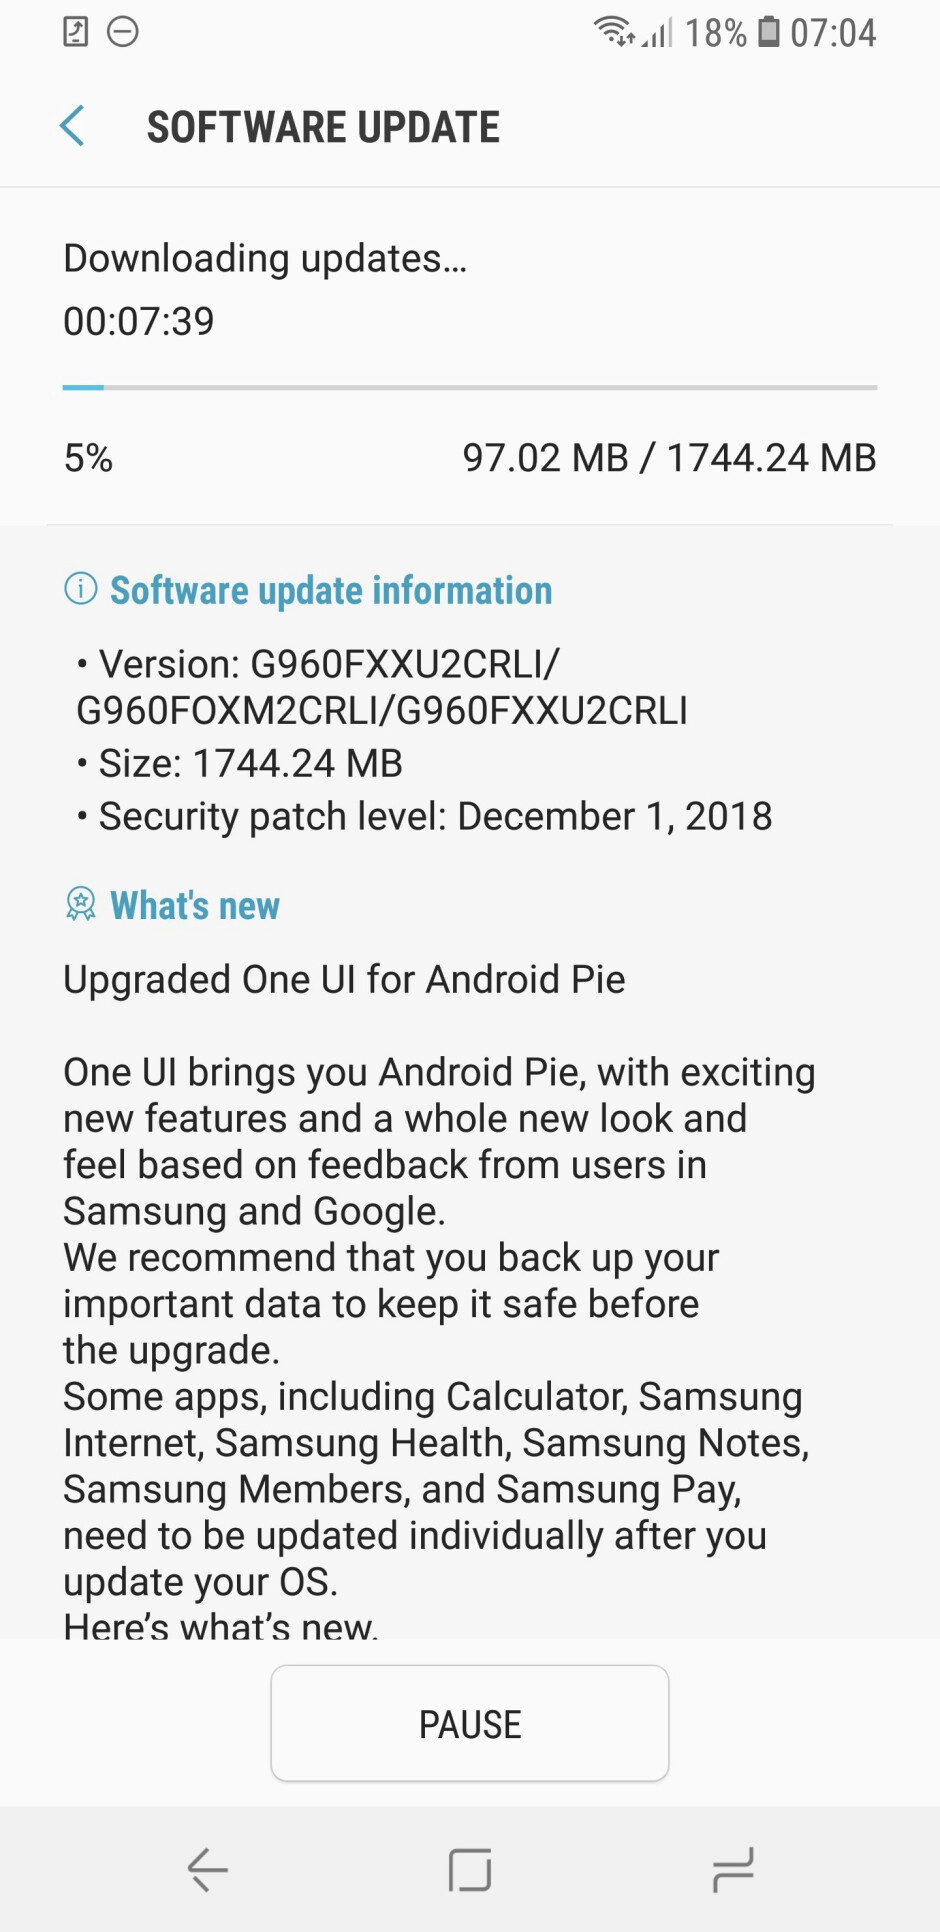 Samsung starts rolling out Android 9 Pie for Galaxy S9/S9+ earlier than expected